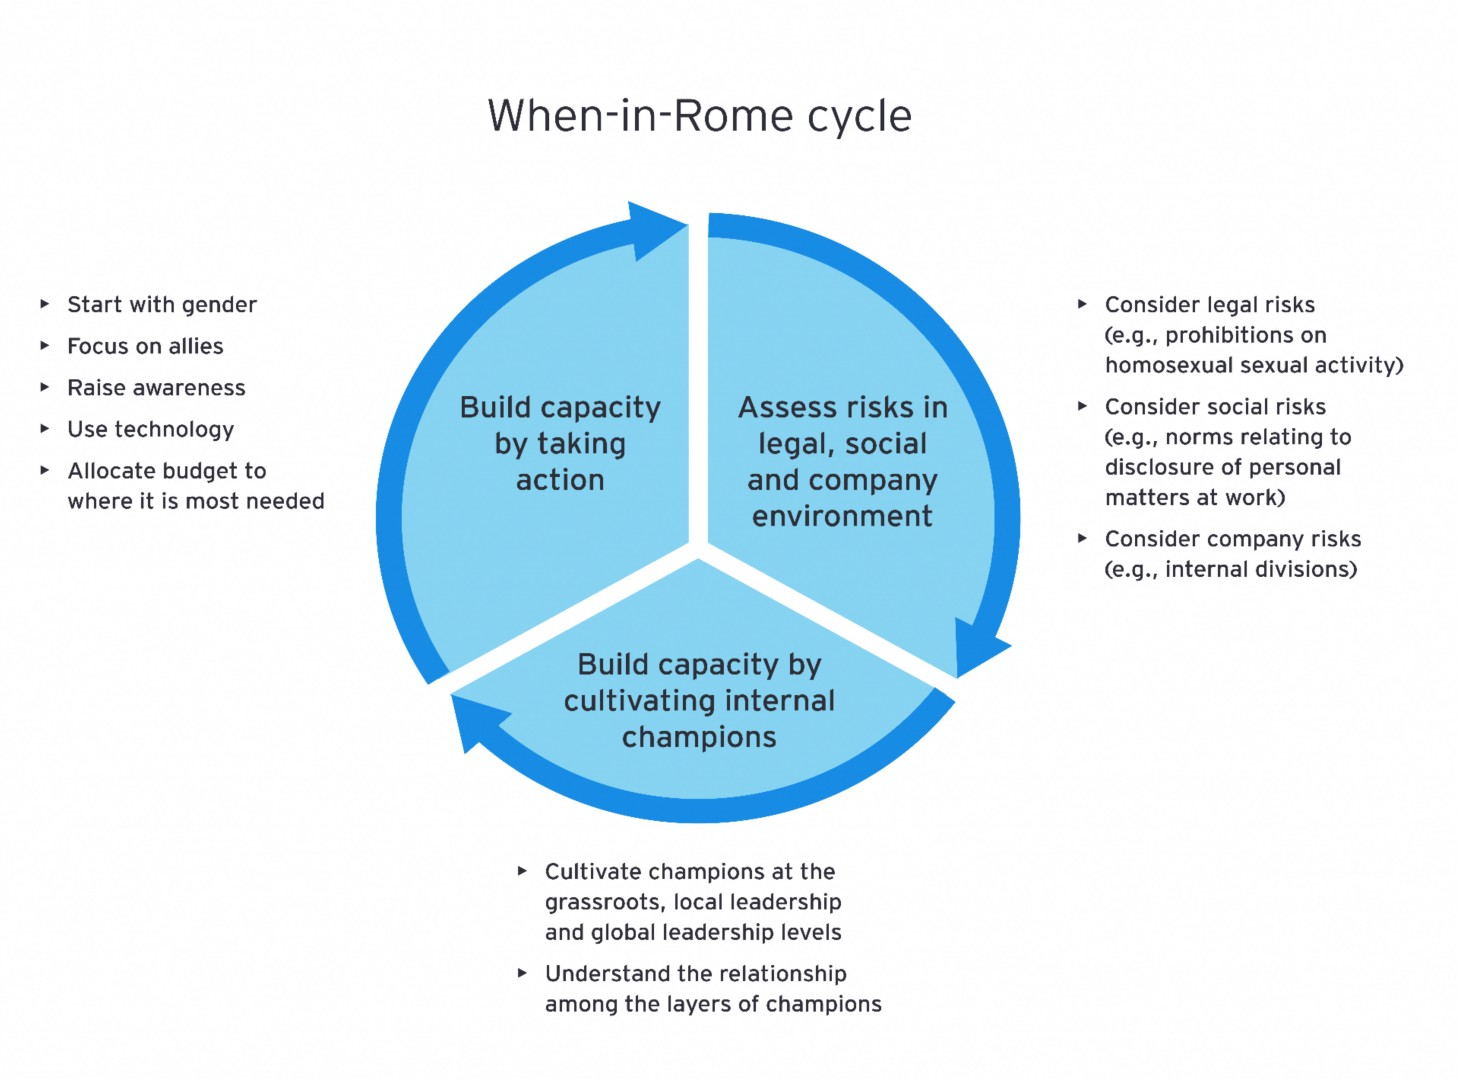 When in rome cycle graphic